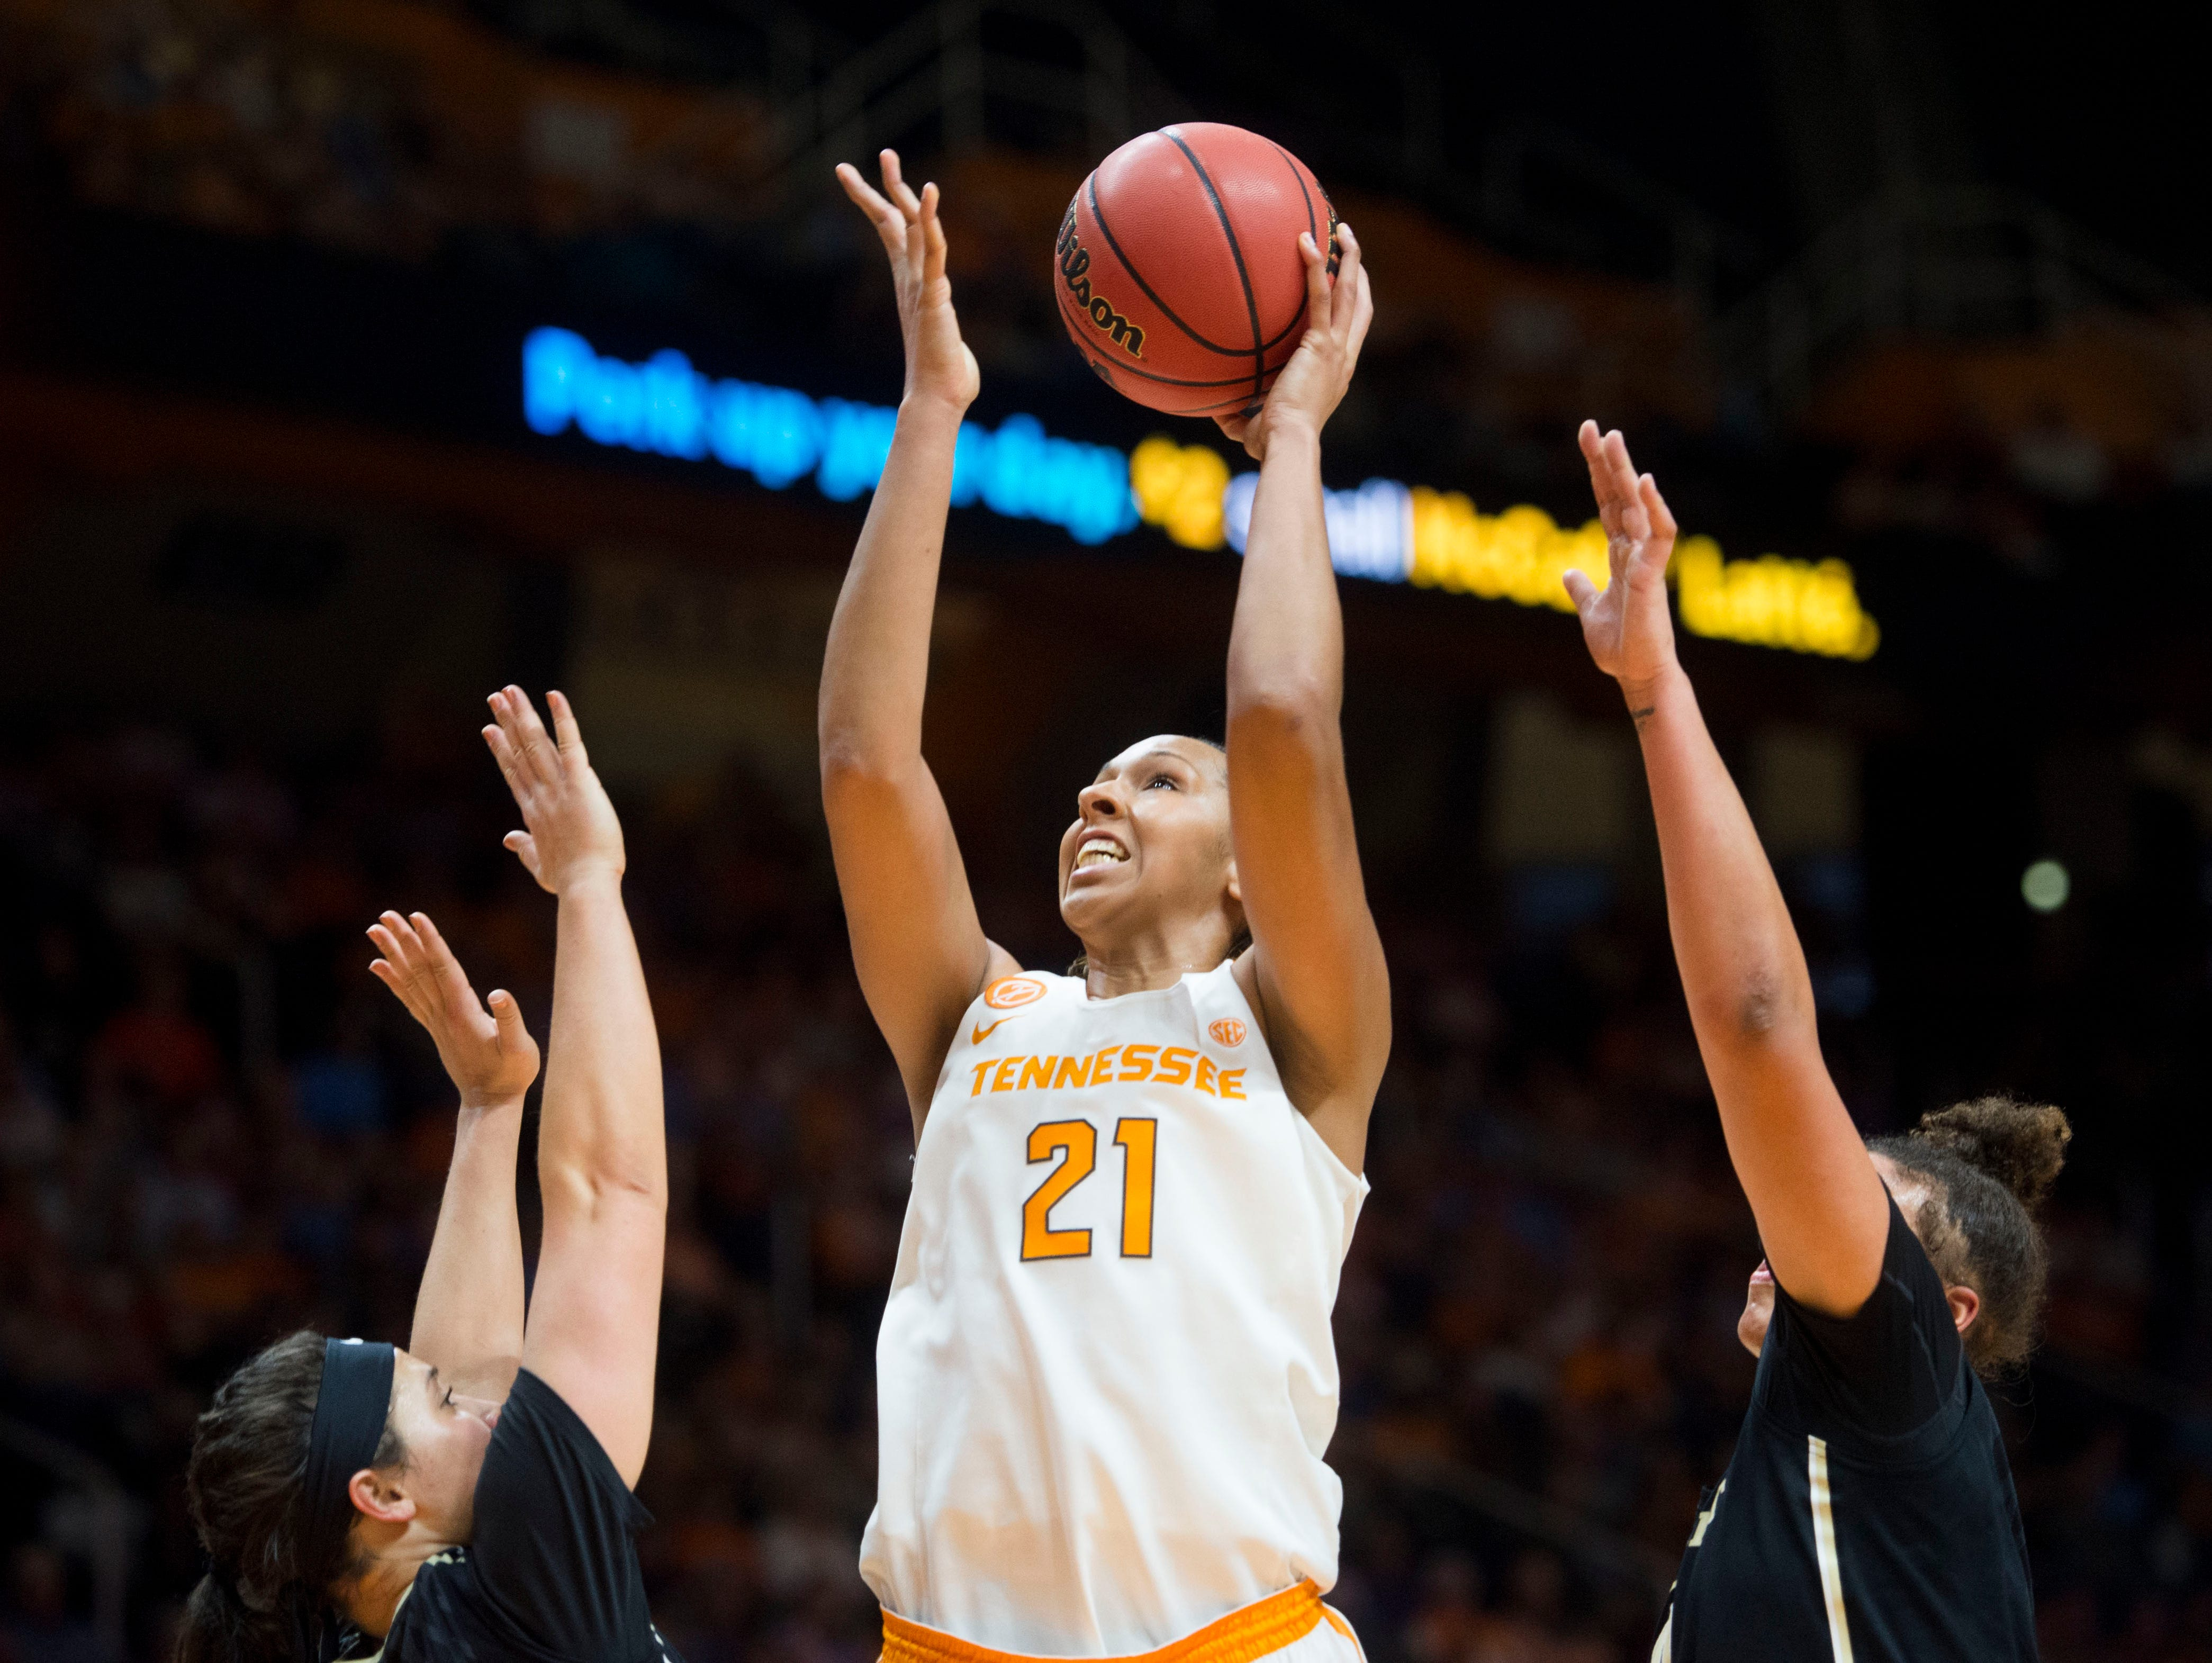 Tennessee's Mercedes Russell will contend with Dayton post players Saturday in the NCAA tournament who can look her squarely in the eye.